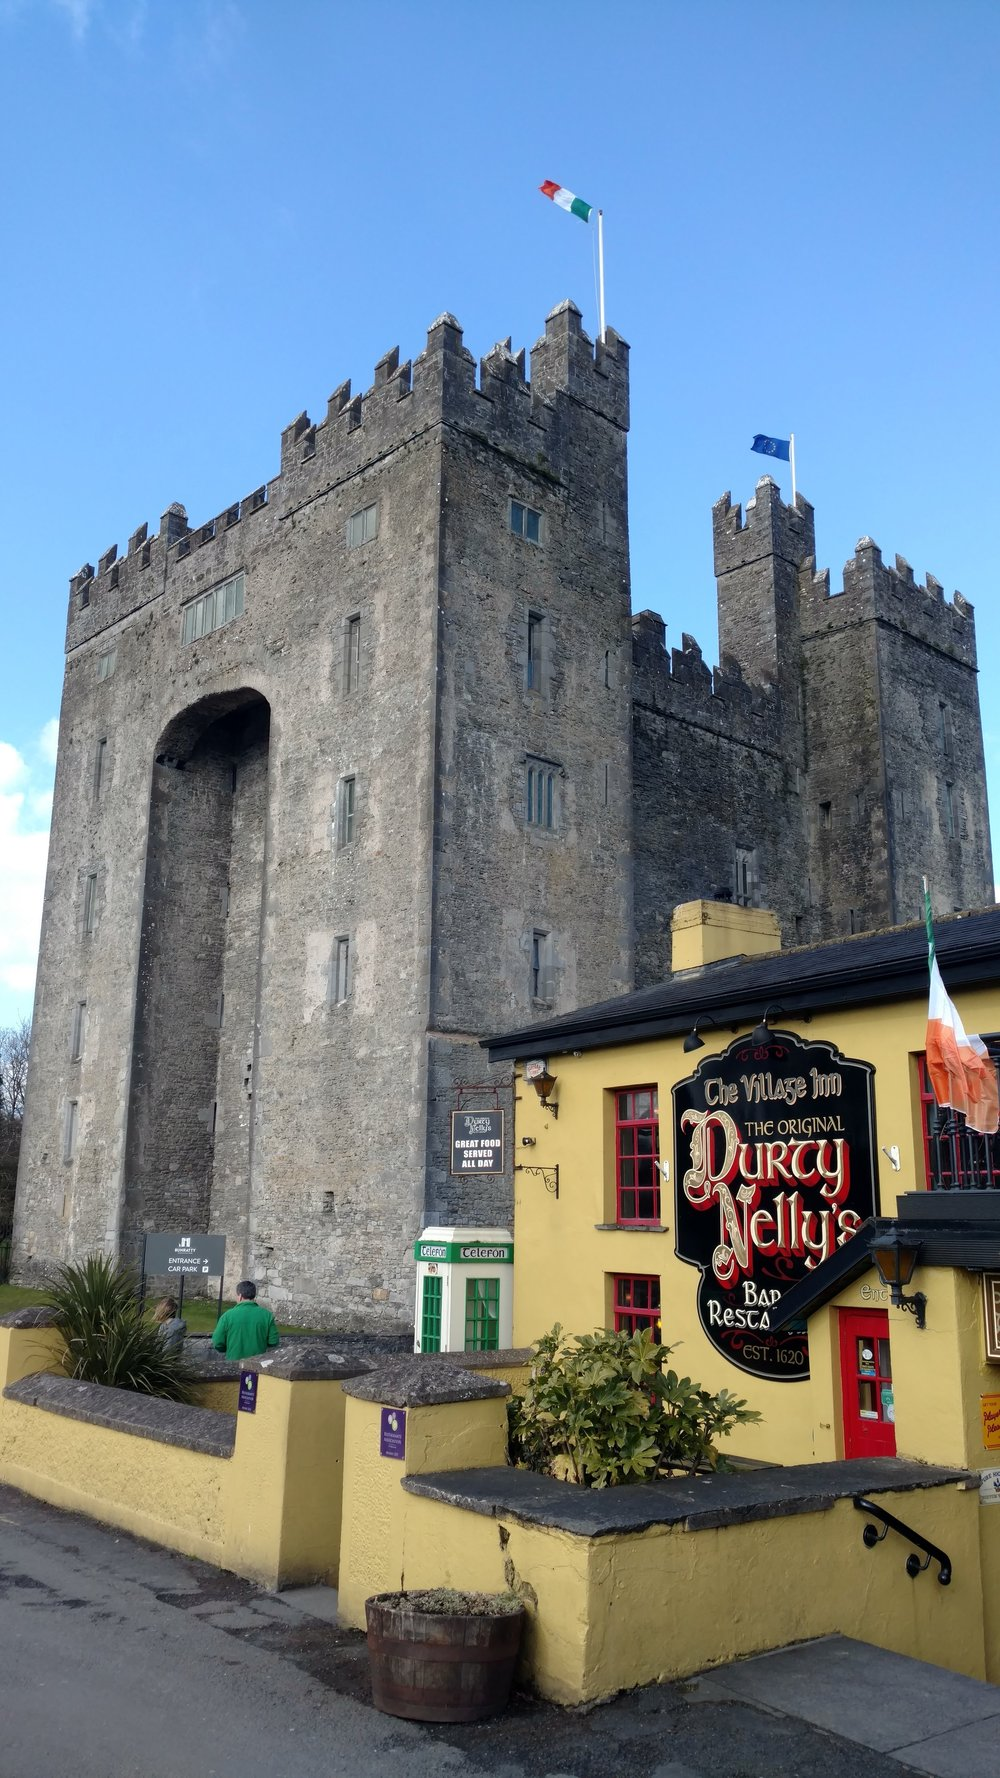 Bunratty Castle and Durty Nelly's, Bunratty